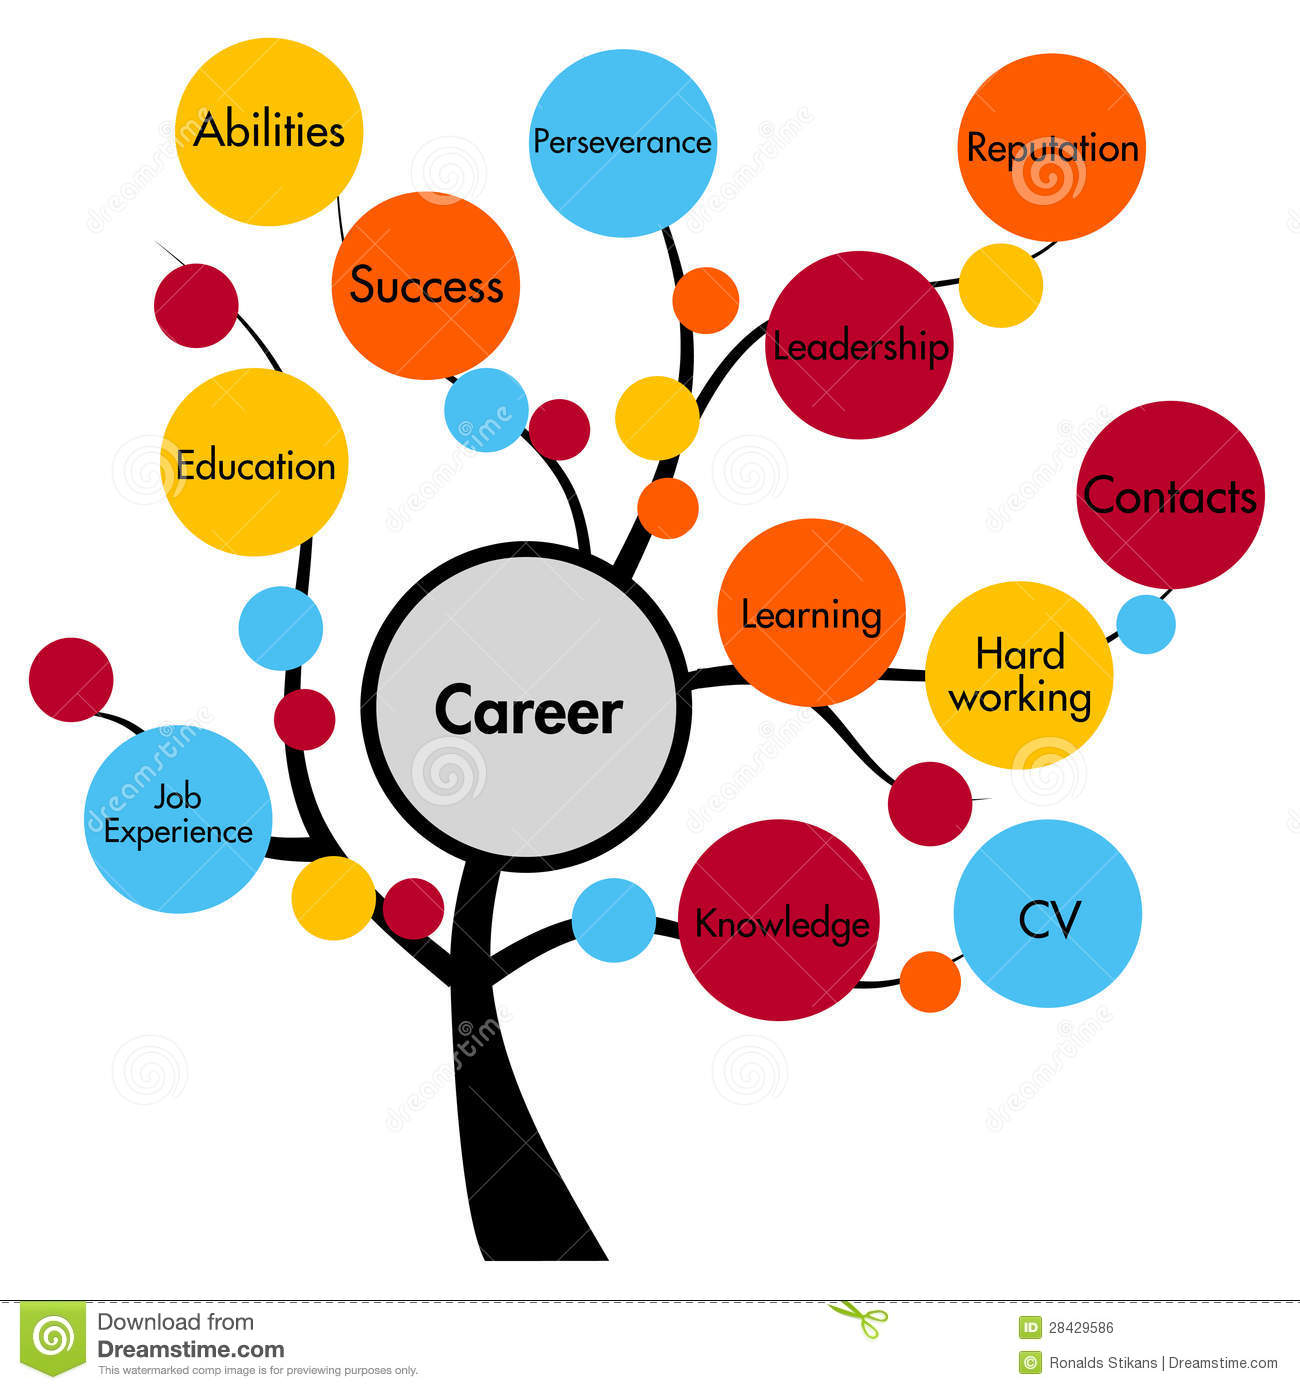 required experience for career option